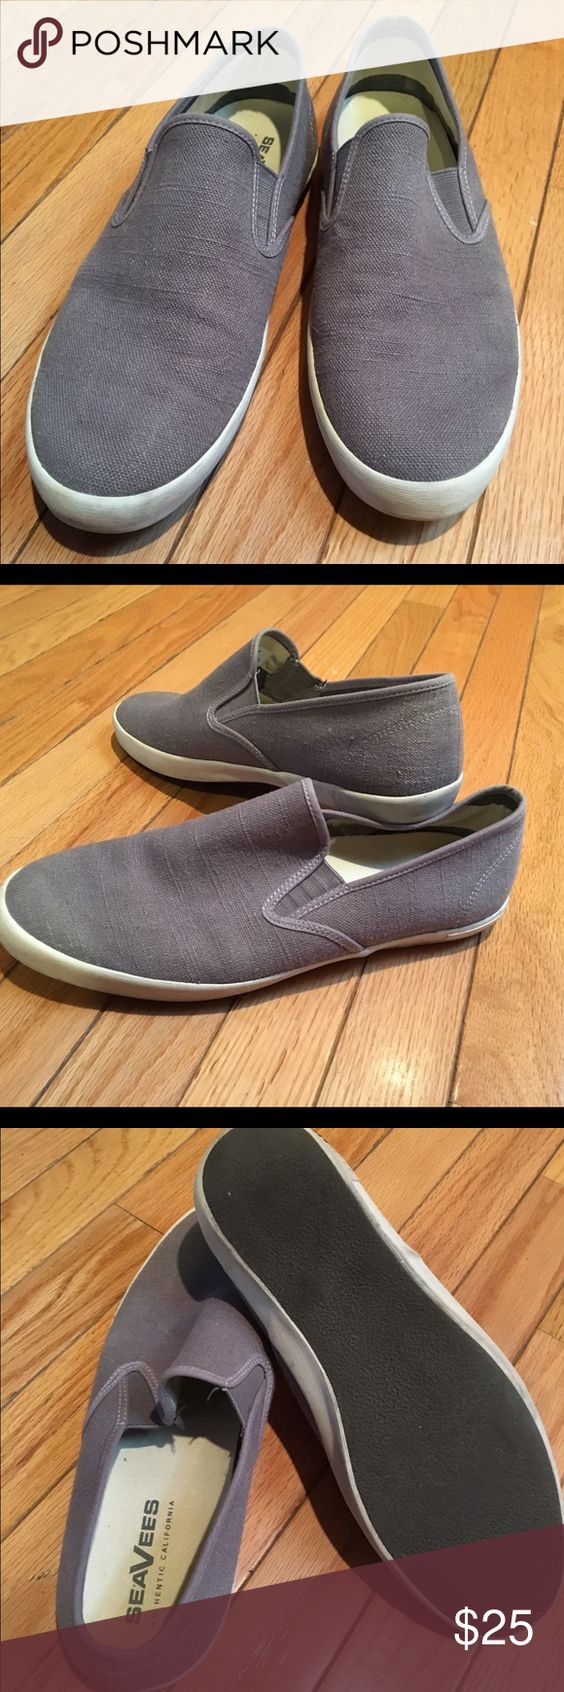 SeaVees Authentic California man shoes Worn, but still in good condition, SeaVees man slip ons grey shoes, size 10 SeaVees Shoes Loafers & Slip-Ons